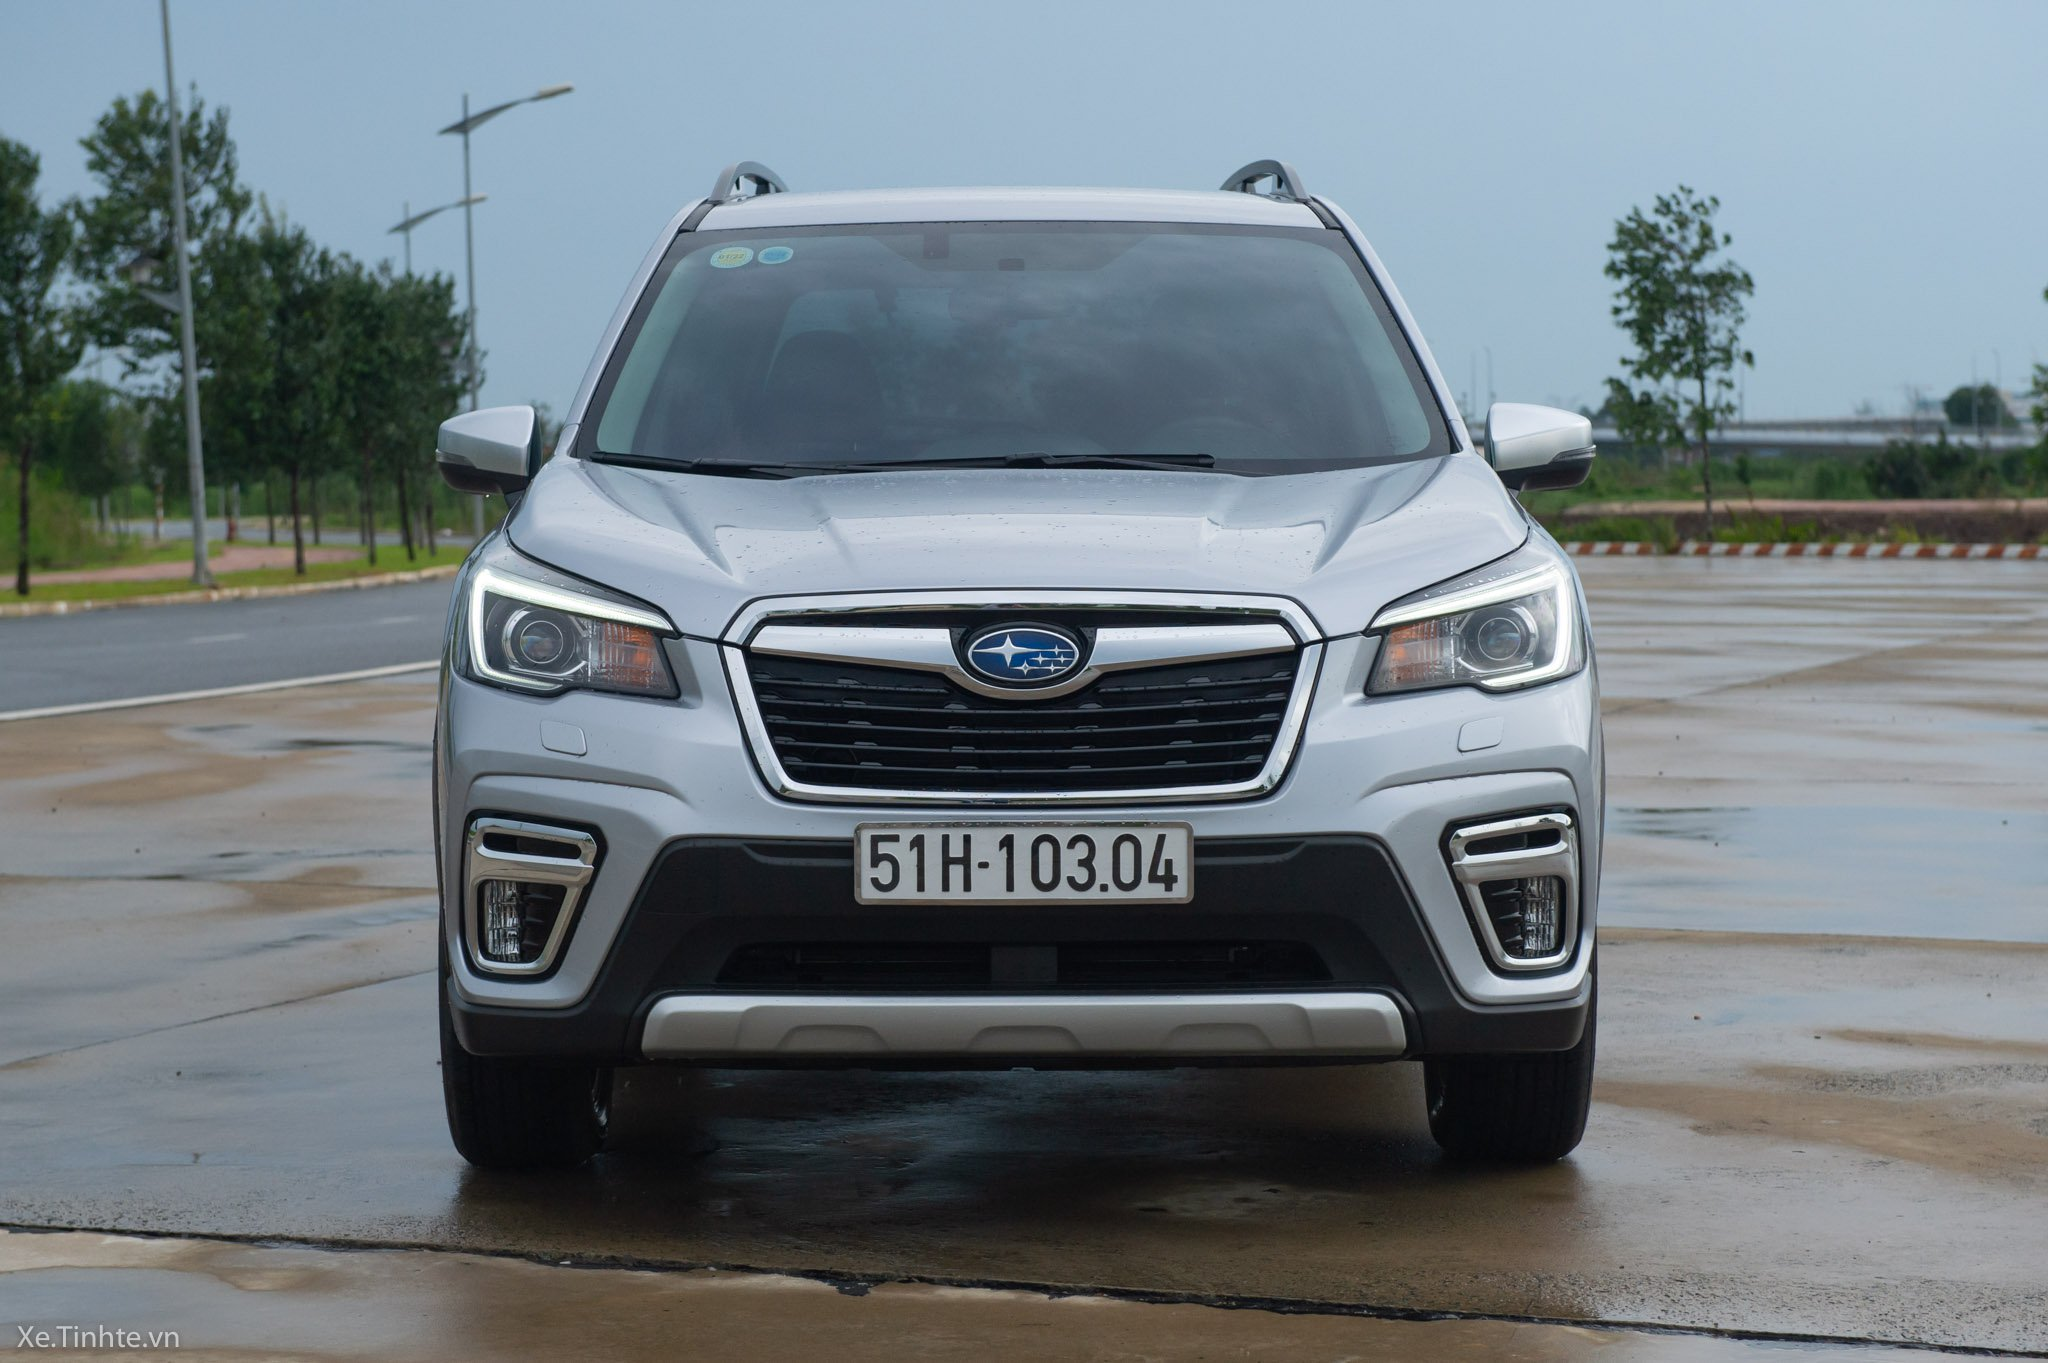 Loading on-hand-subaru-Forester-2019-0709.jpg ...